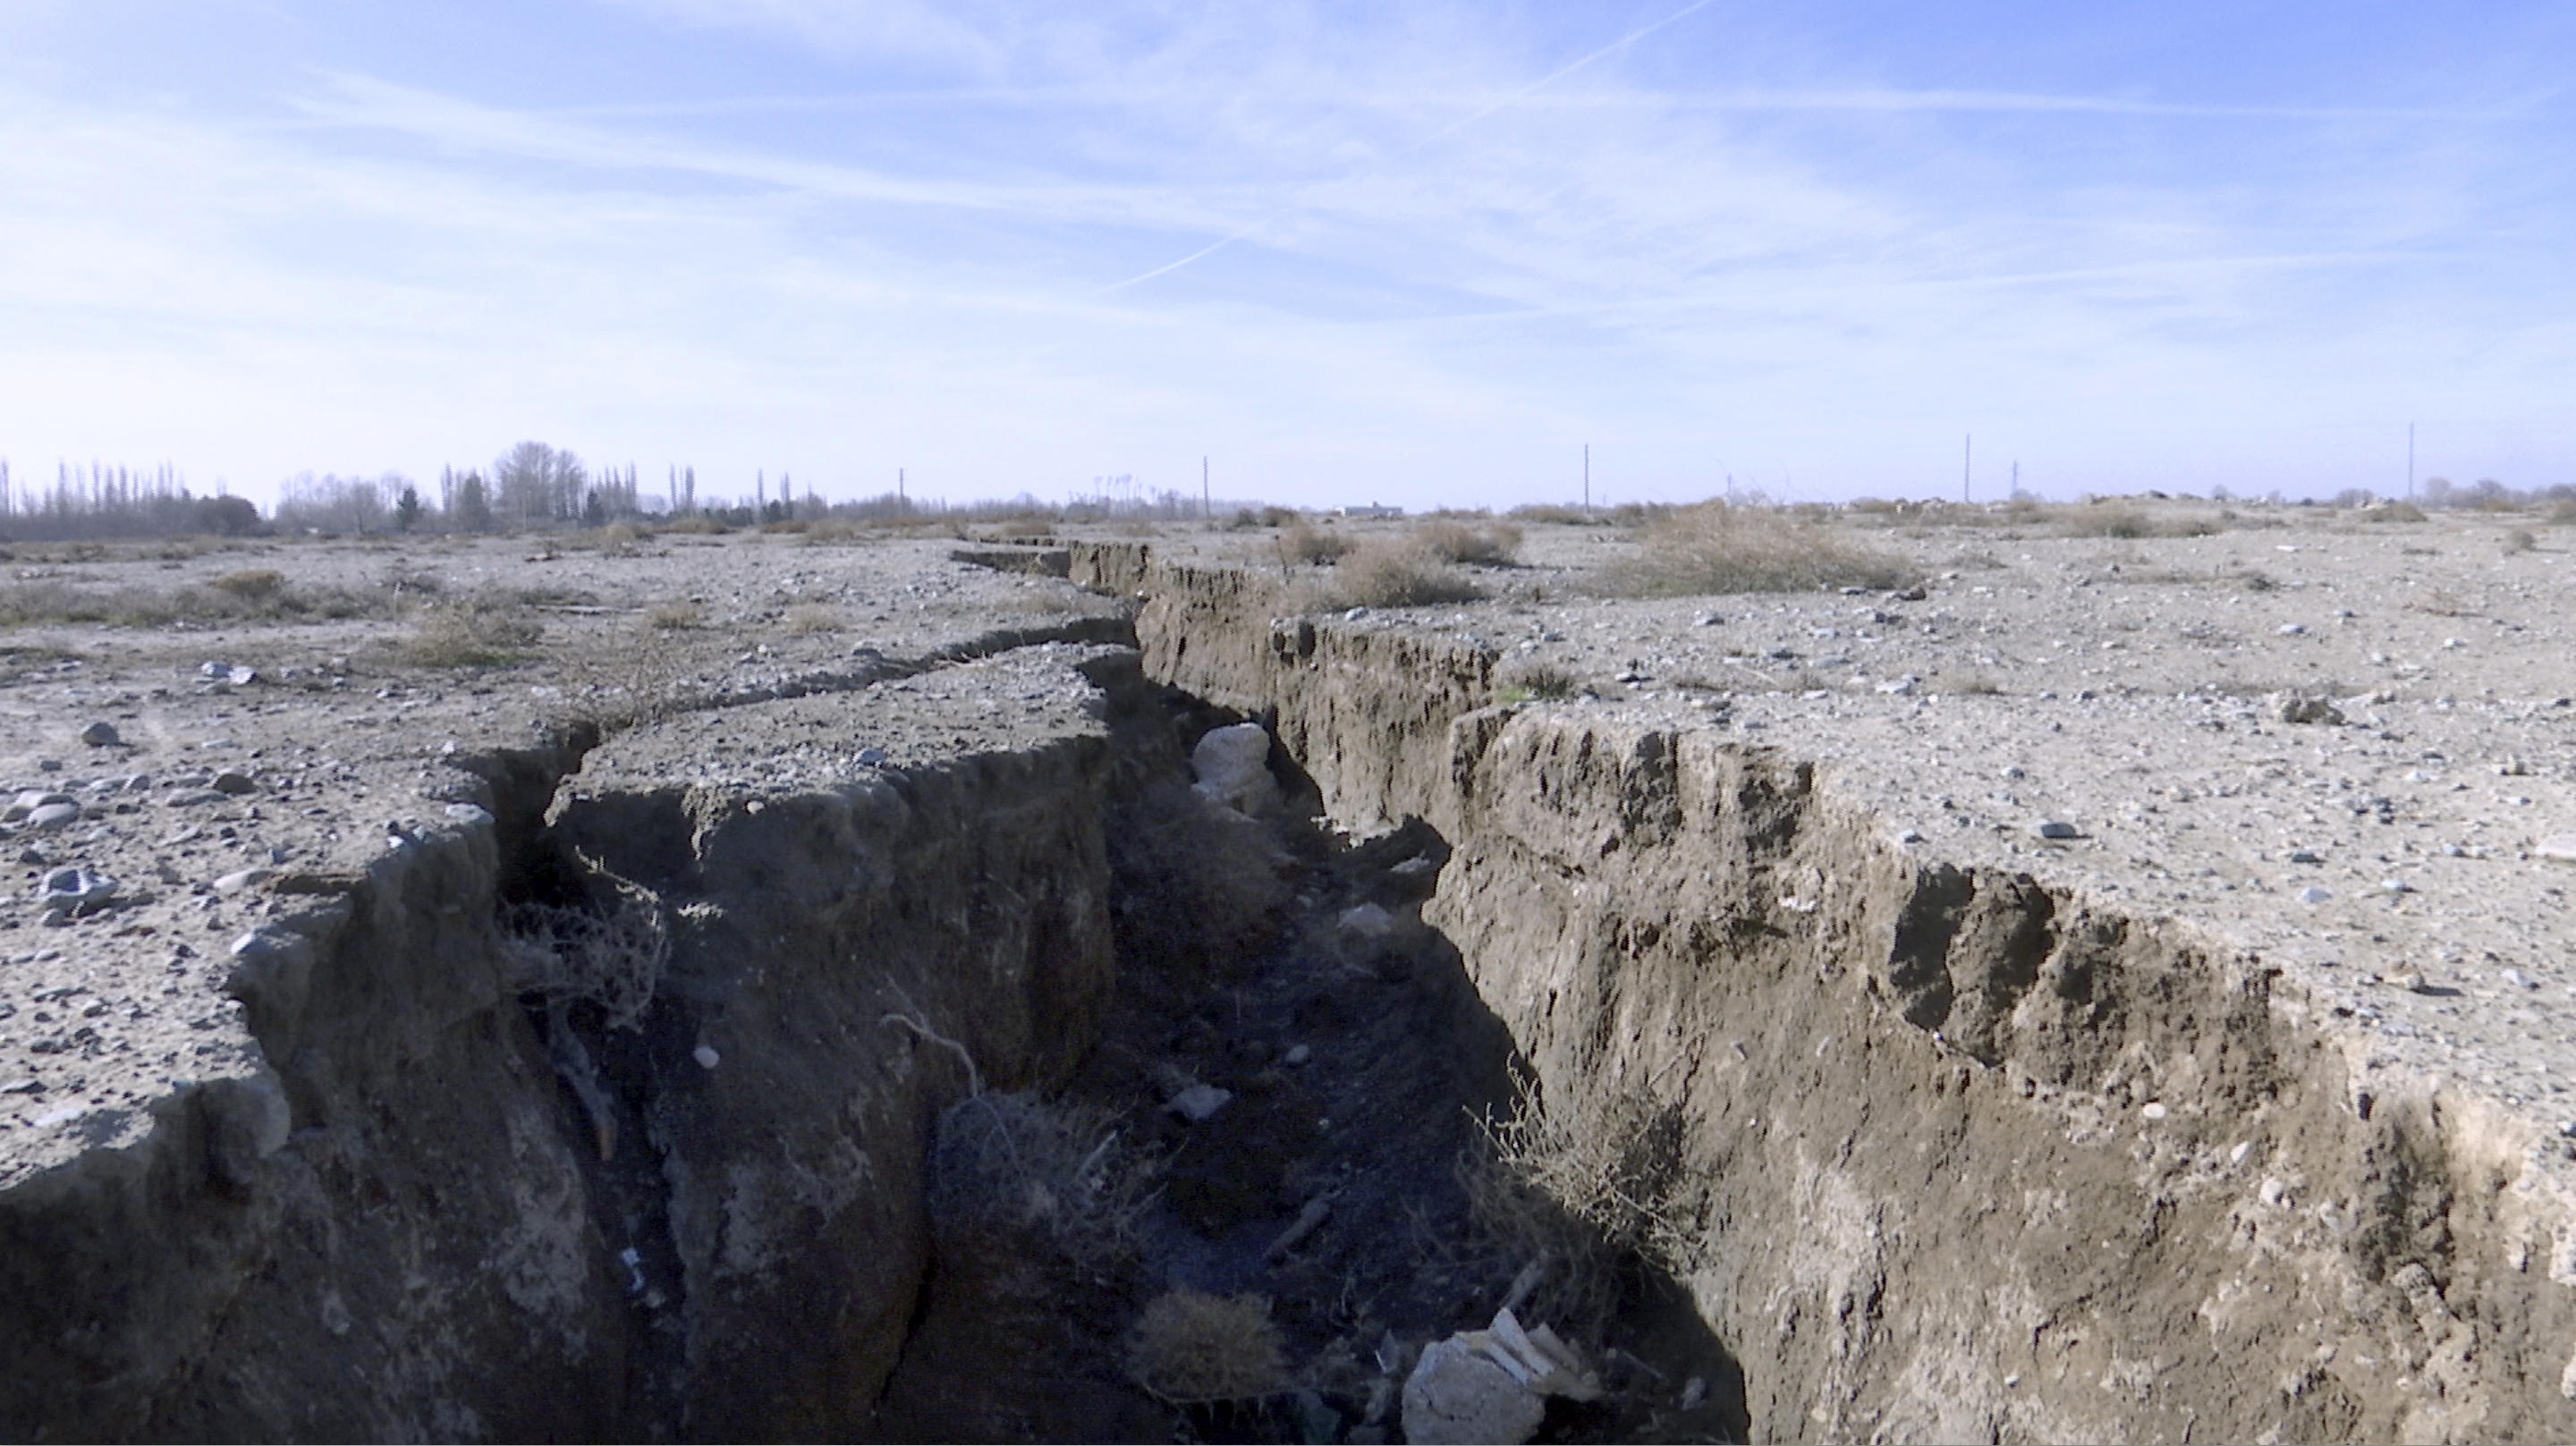 Massive holes caused by drought and excessive water pumping in Iran, August 8, 2018